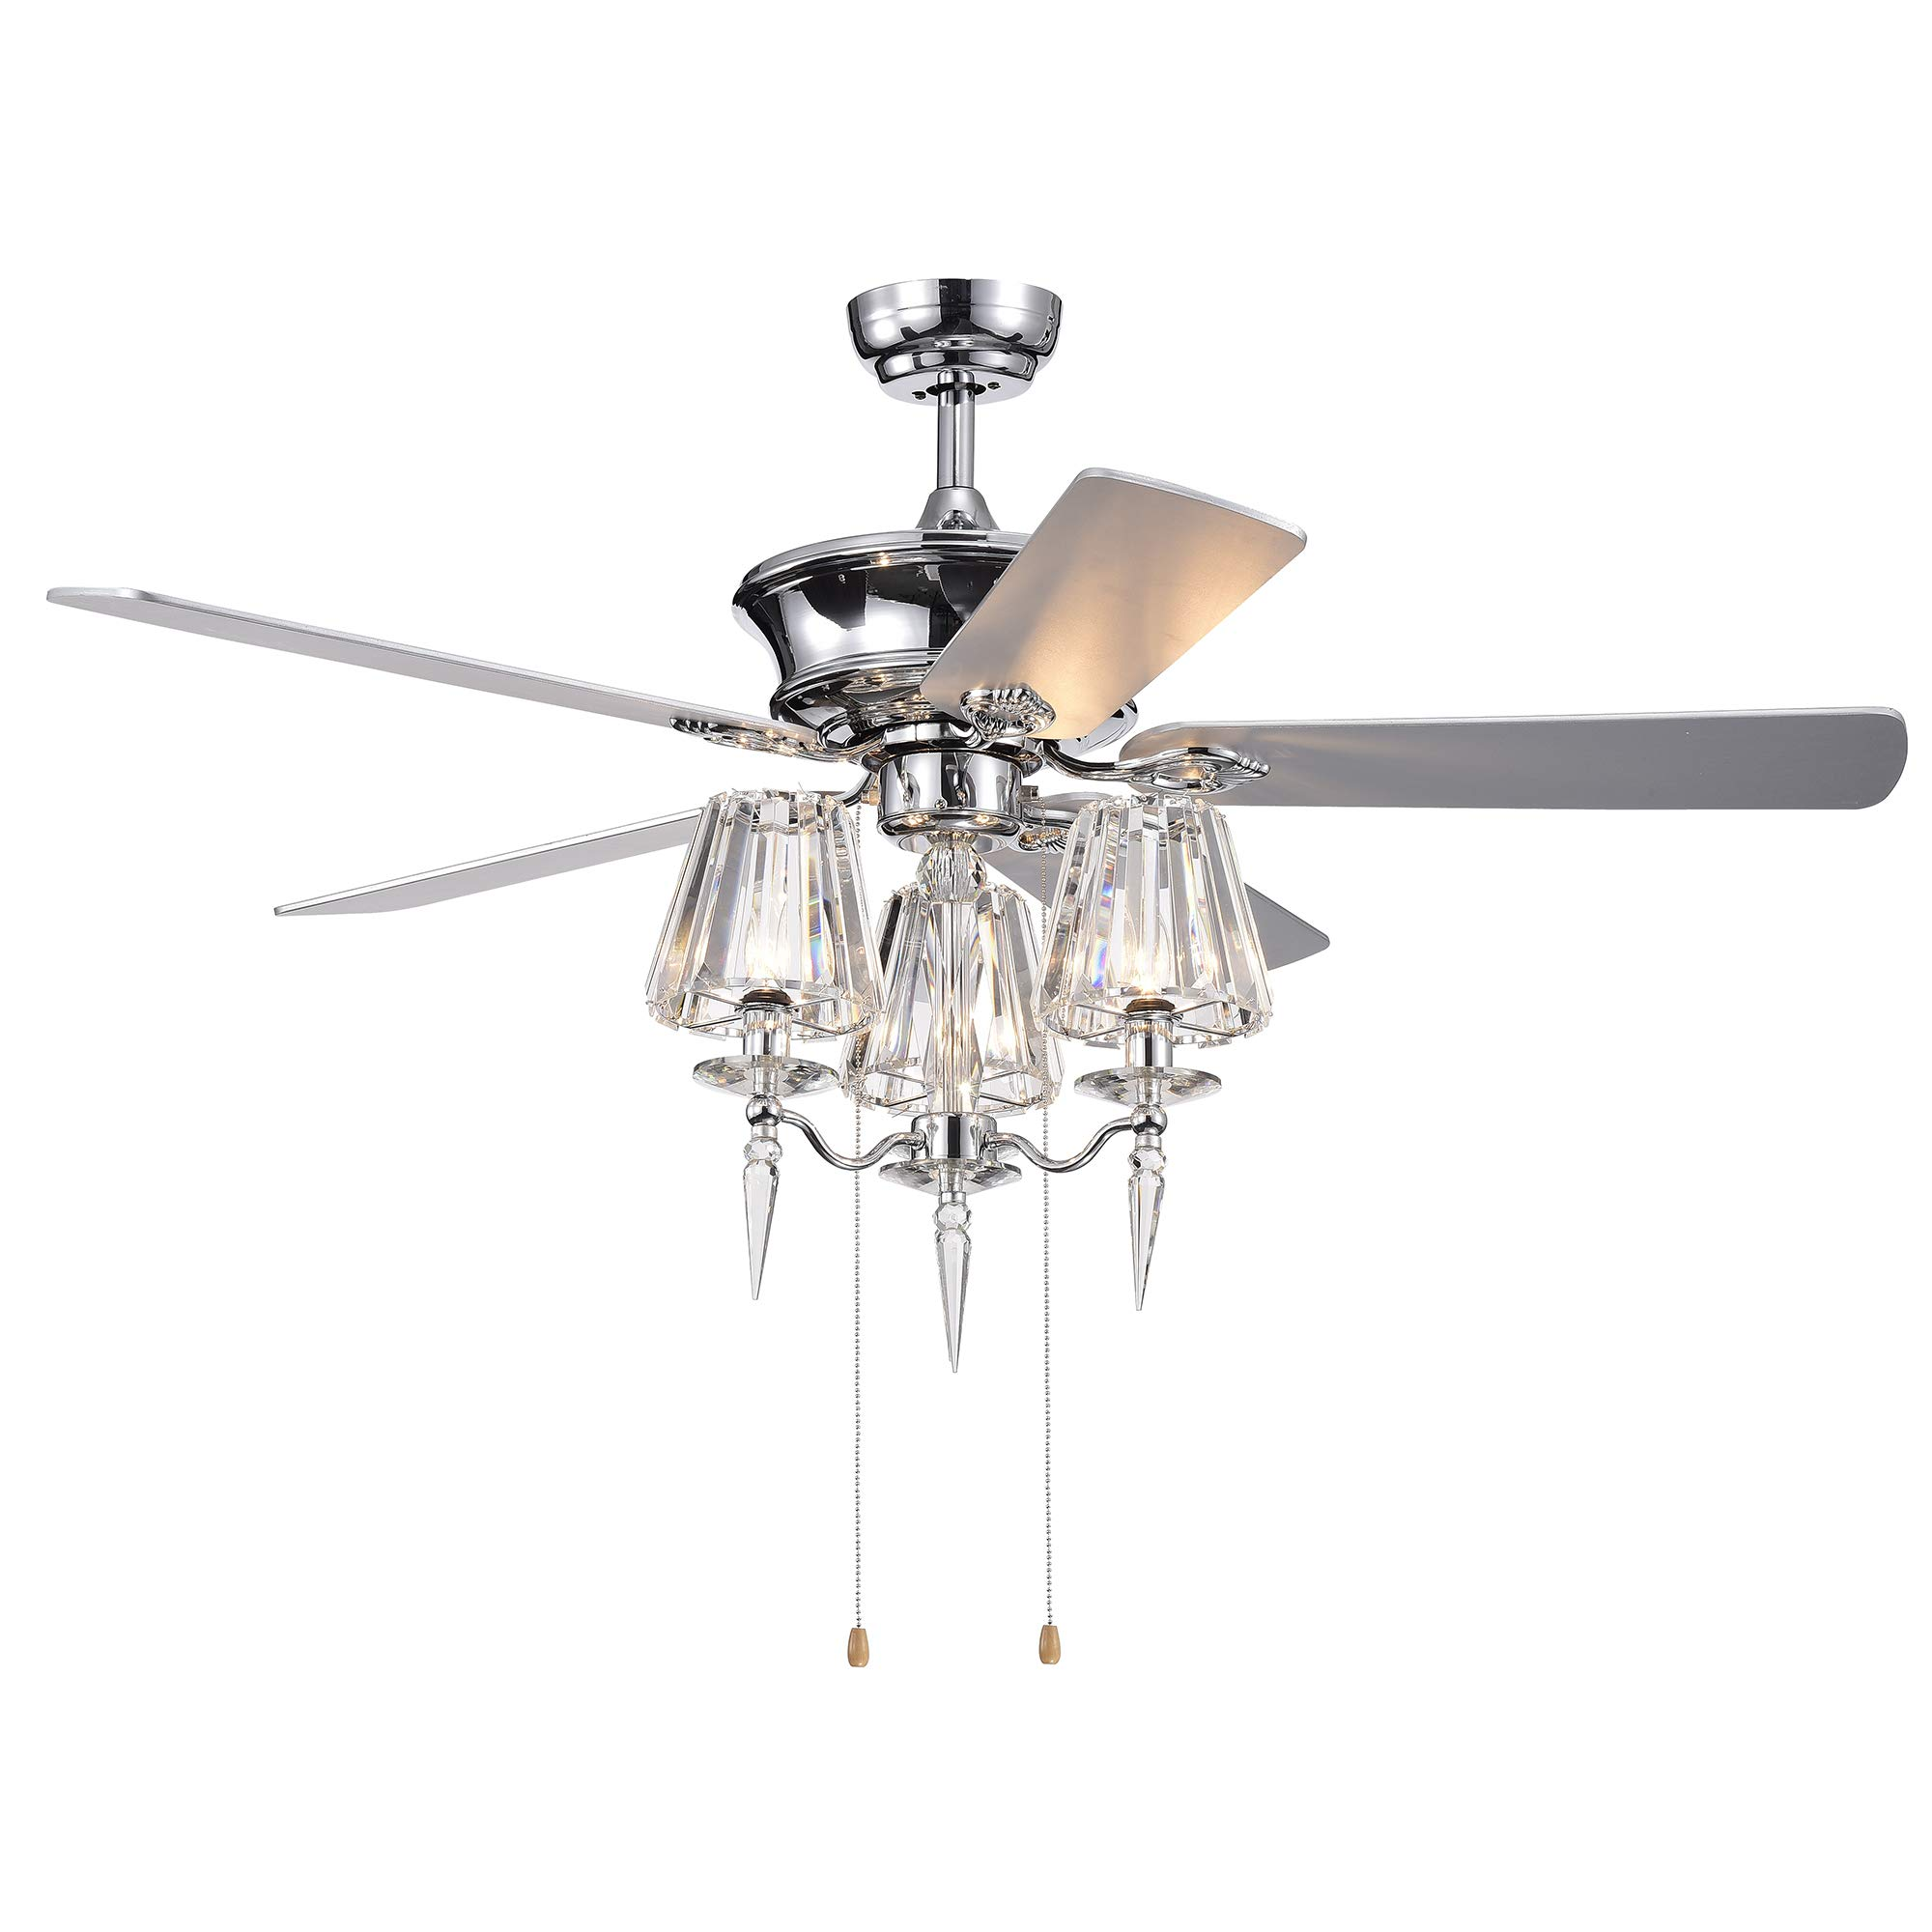 Warehouse Of Tiffany CFL-8363CH Onwen 52-inch 5-Blade Chrome Lighted Ceilng Crystal Lamps (Optional Remote) Ceiling Fan,